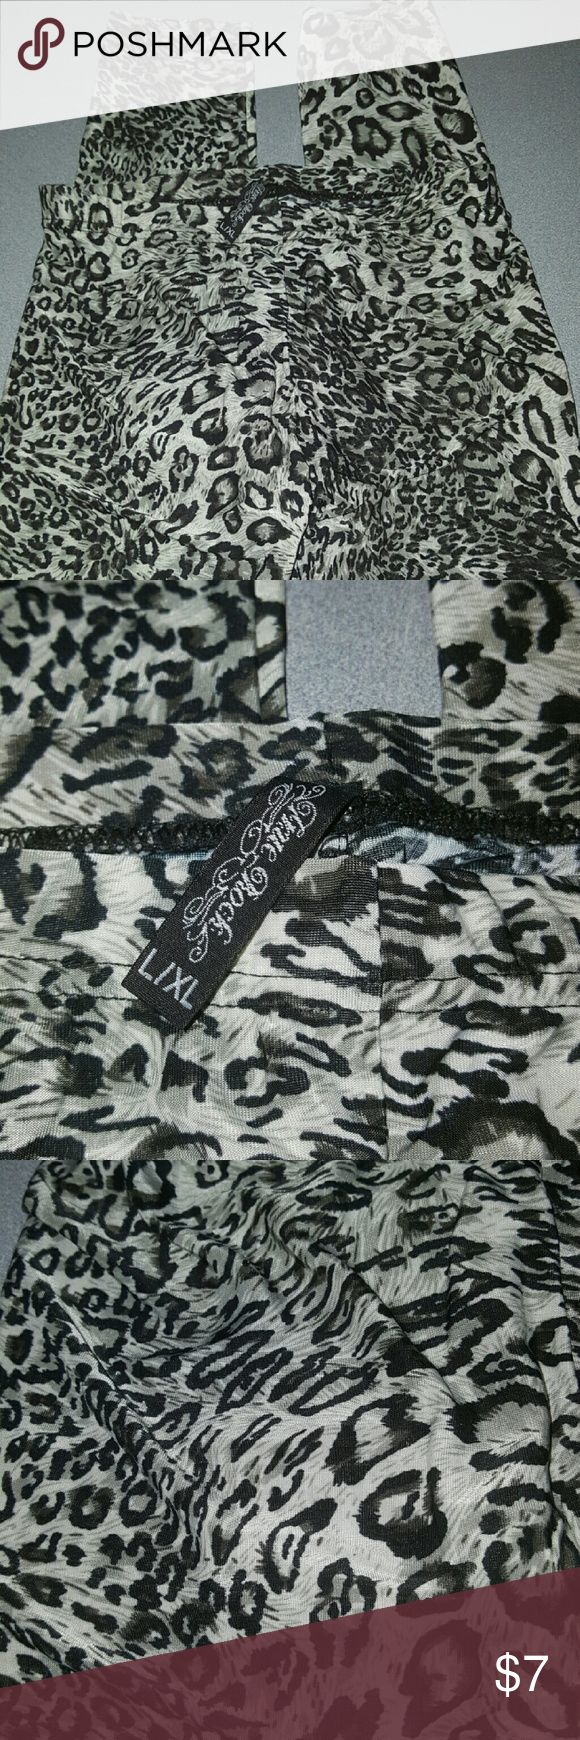 Cheetah Print Leggings Very thin and light, Perfect for Spring, New without tags, never worn L/XL Pants Leggings